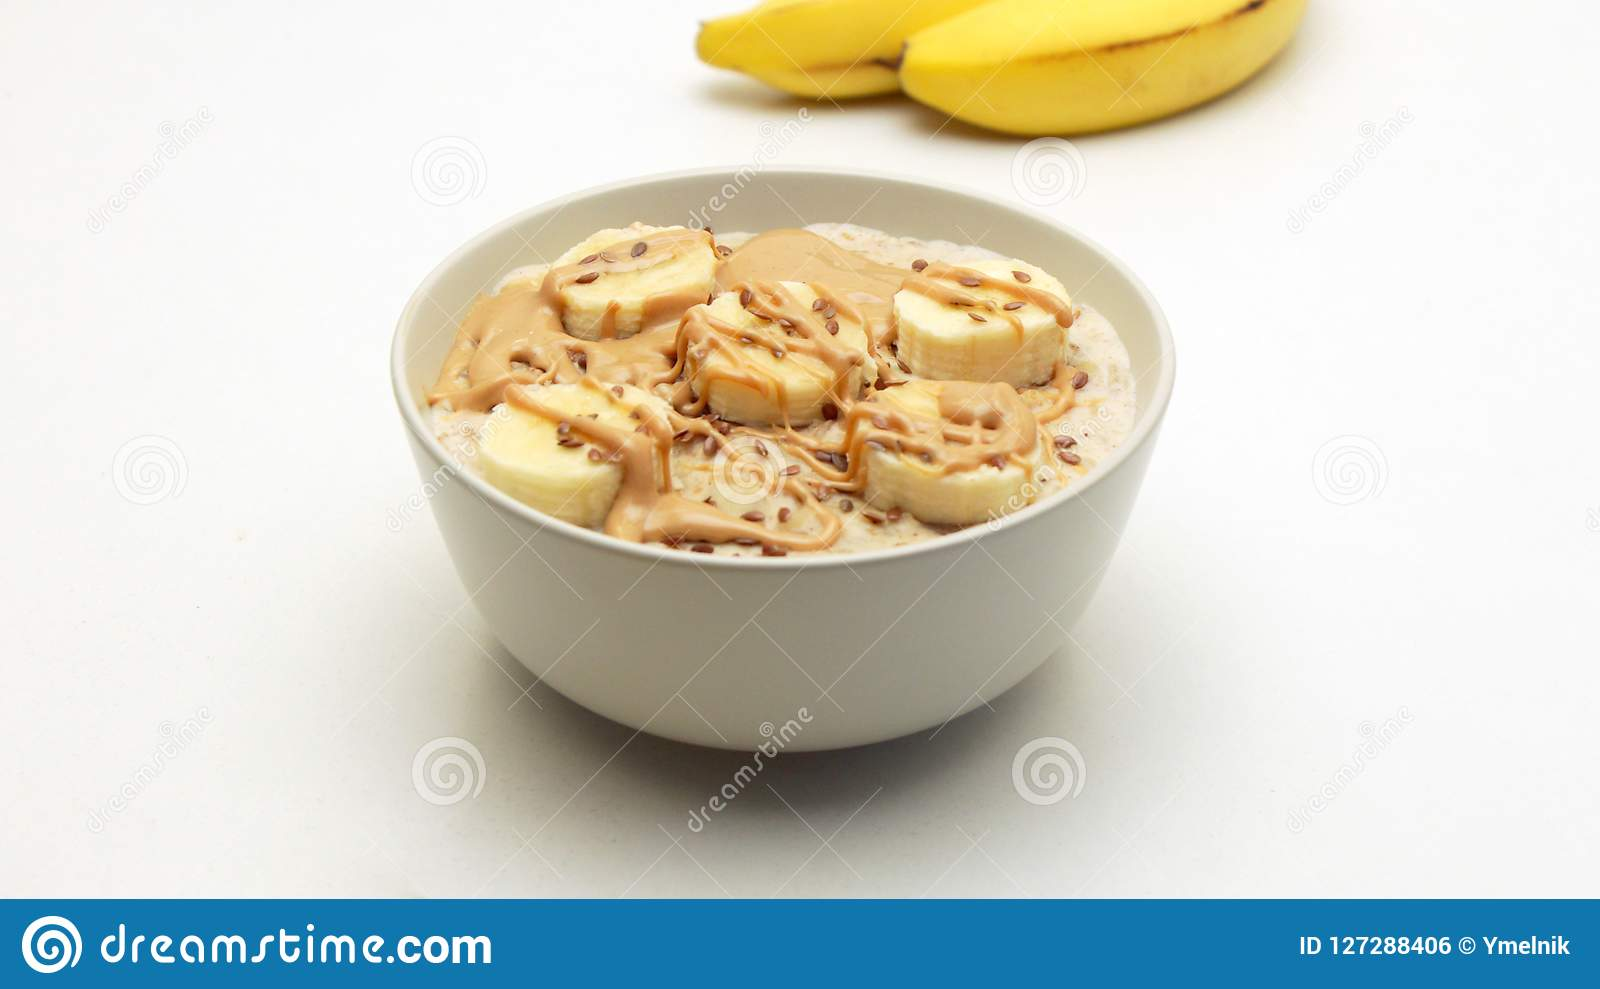 Oatmeal Porridge Bowl with Banana and Nut Butter.